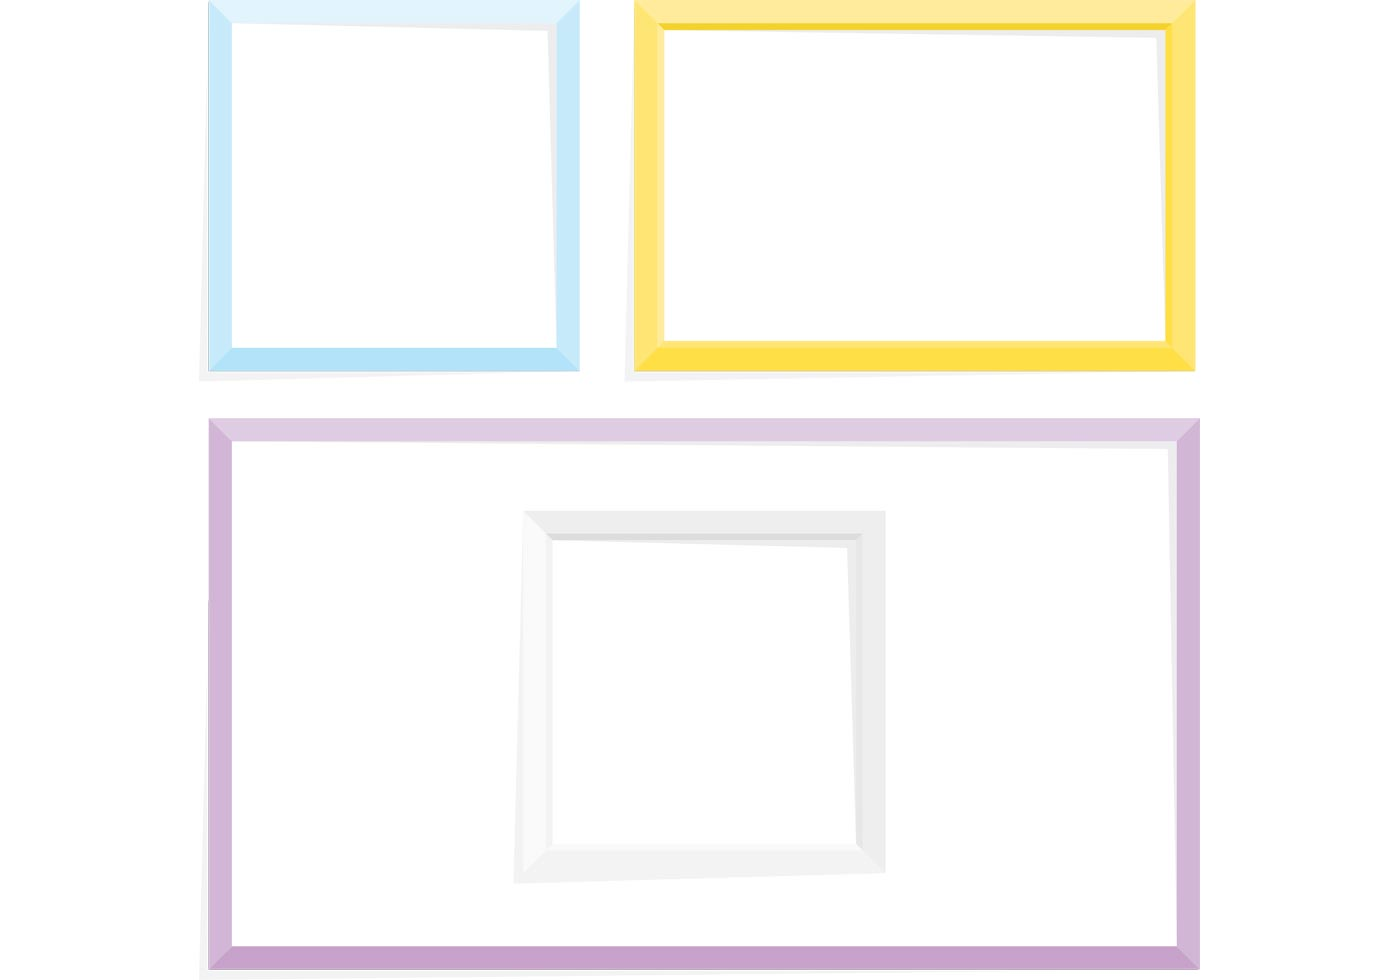 Simple Frame Vector Pack - Download Free Vector Art, Stock ...